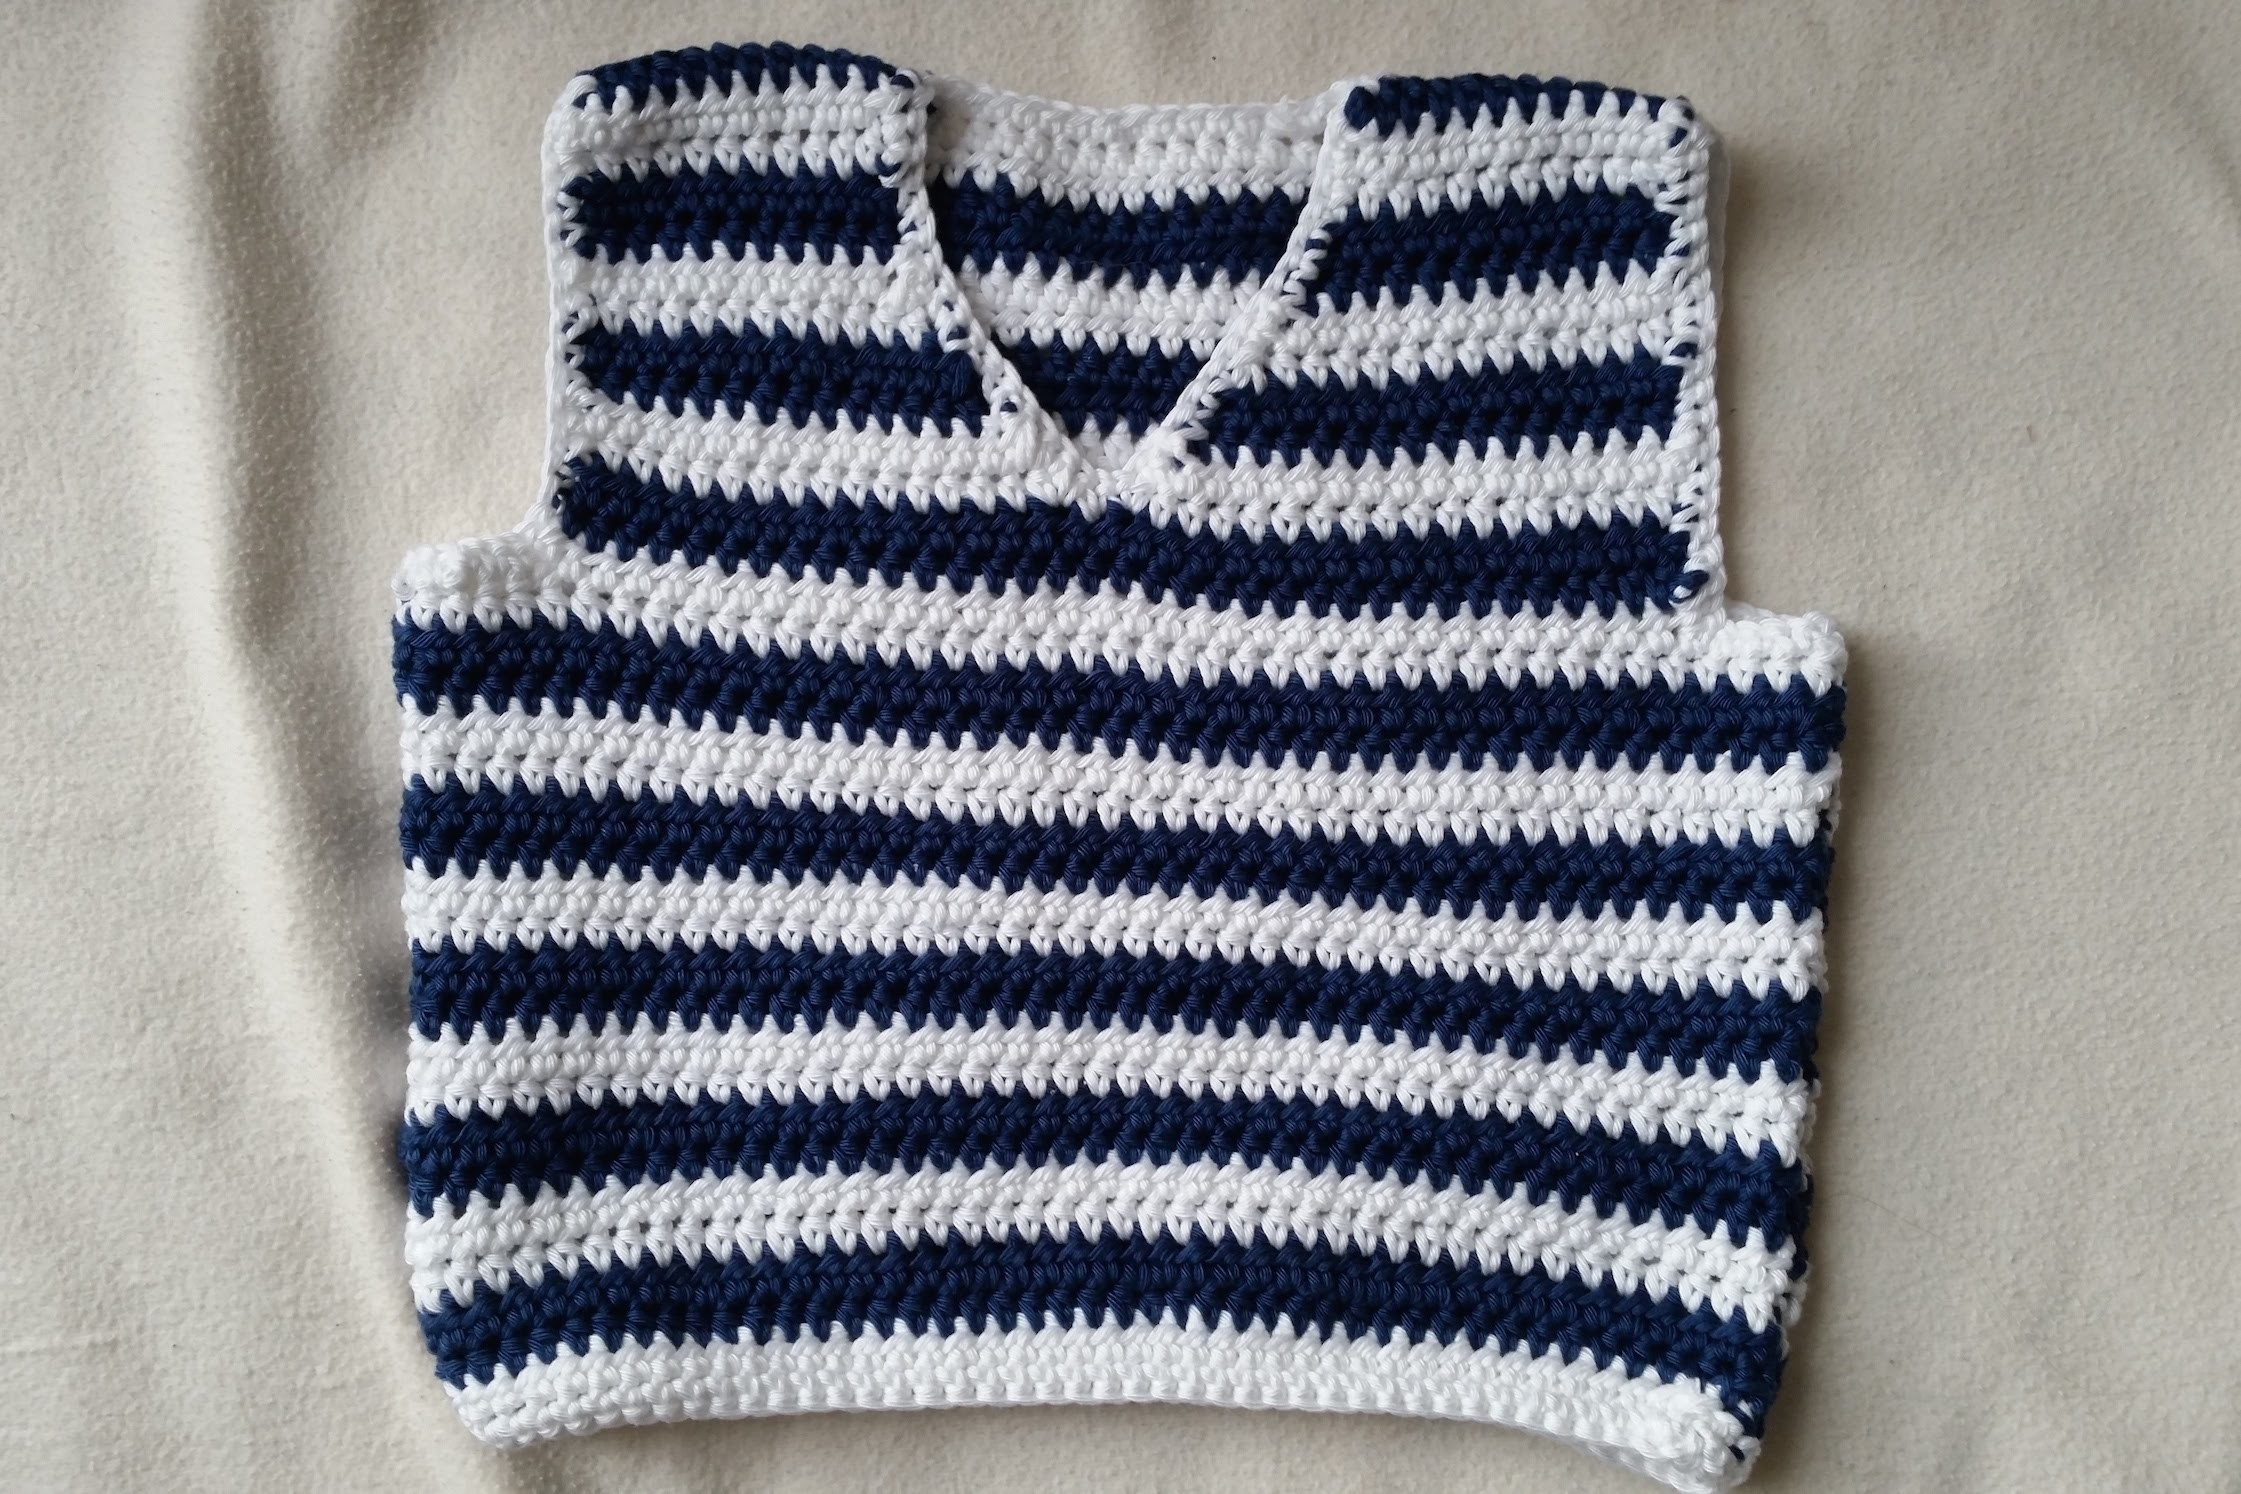 How to crochet a sleeveless jumper - Part 3 - Sewing by BerlinCrochet